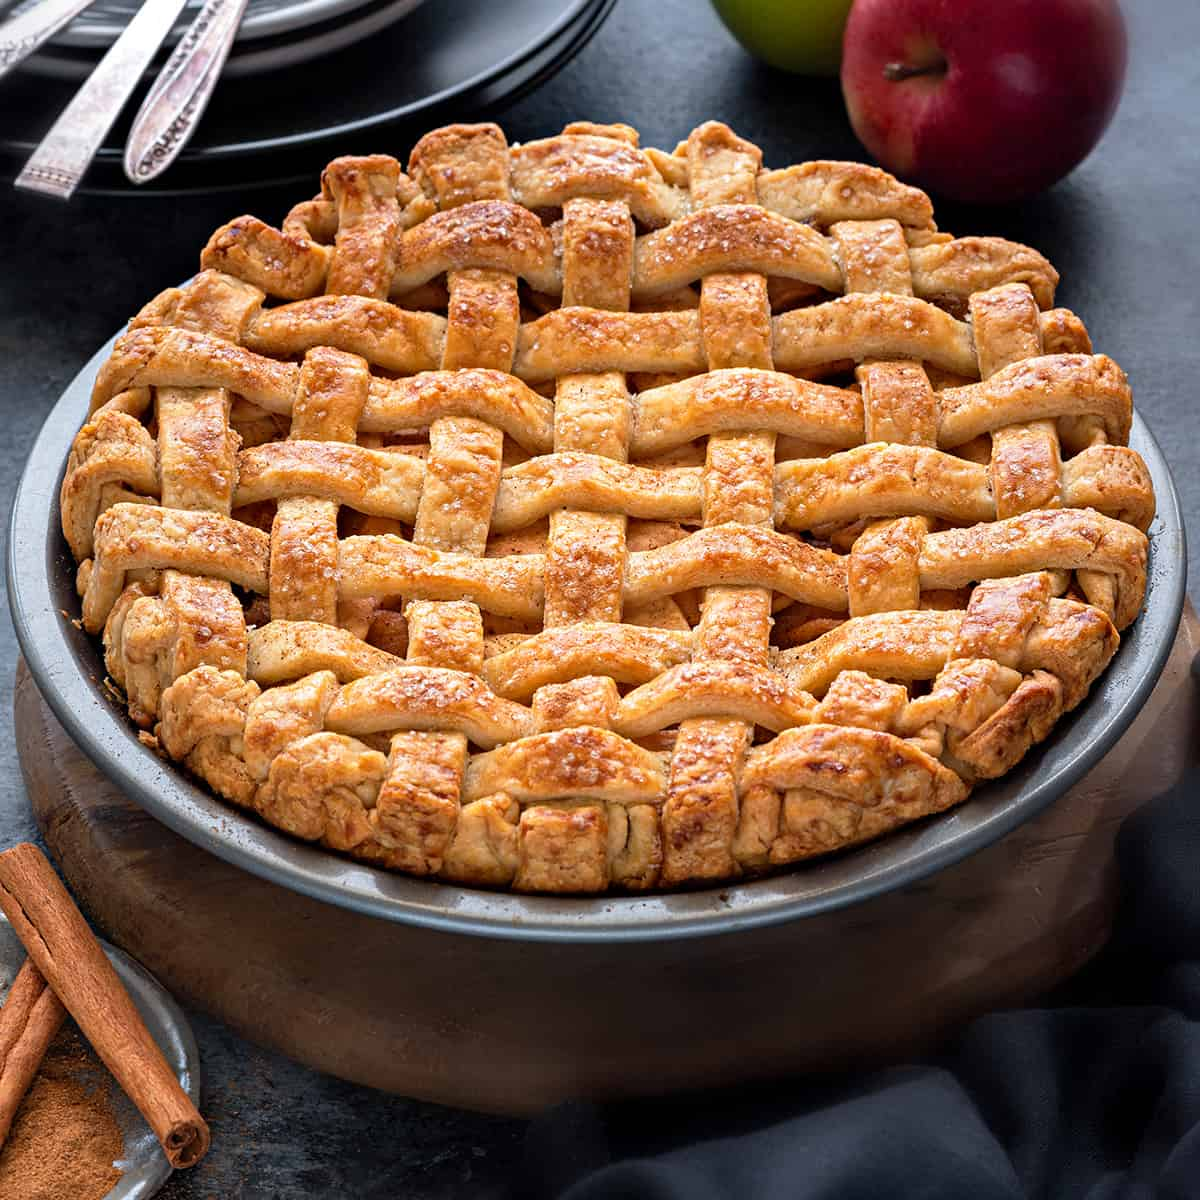 Close up shot of an apple pie with a crispy lattice crust placed in a dish